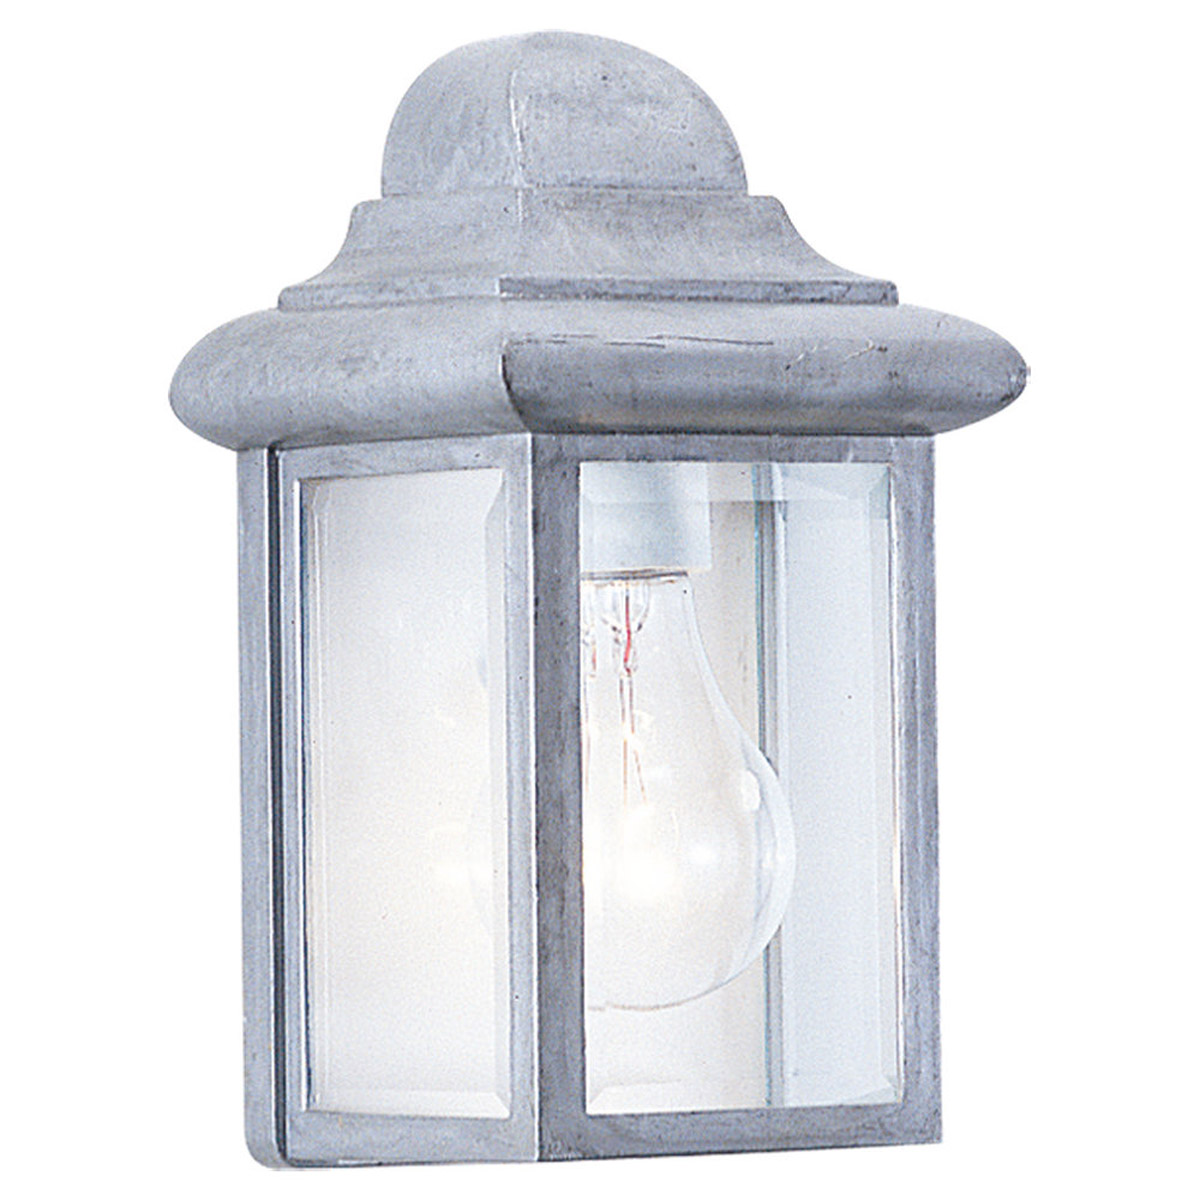 Sea Gull 8588-155 Mullberry Hill 1 Light 9 inch Pewter Outdoor Wall Lantern in Pewter 155 photo